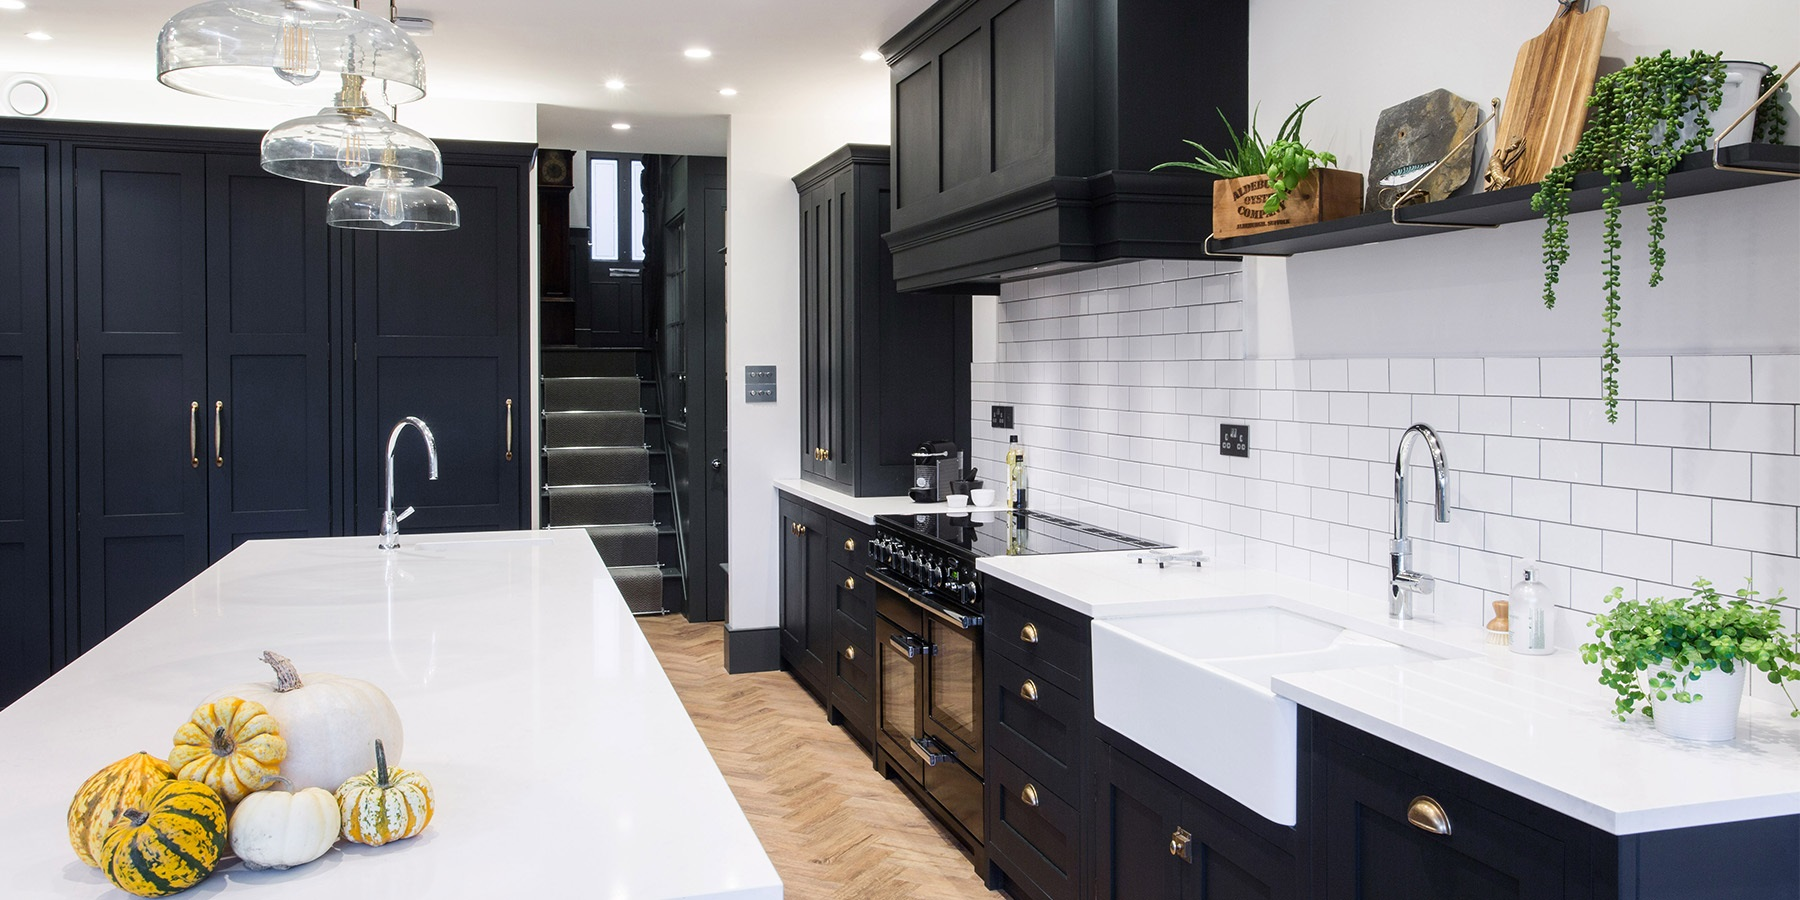 Industrial Nautical Shaker Kitchen - Burlanes bespoke Hoyden kitchen in navy blue with contrasting white worktops, central kitchen island, belfast sink and beautiful larder.